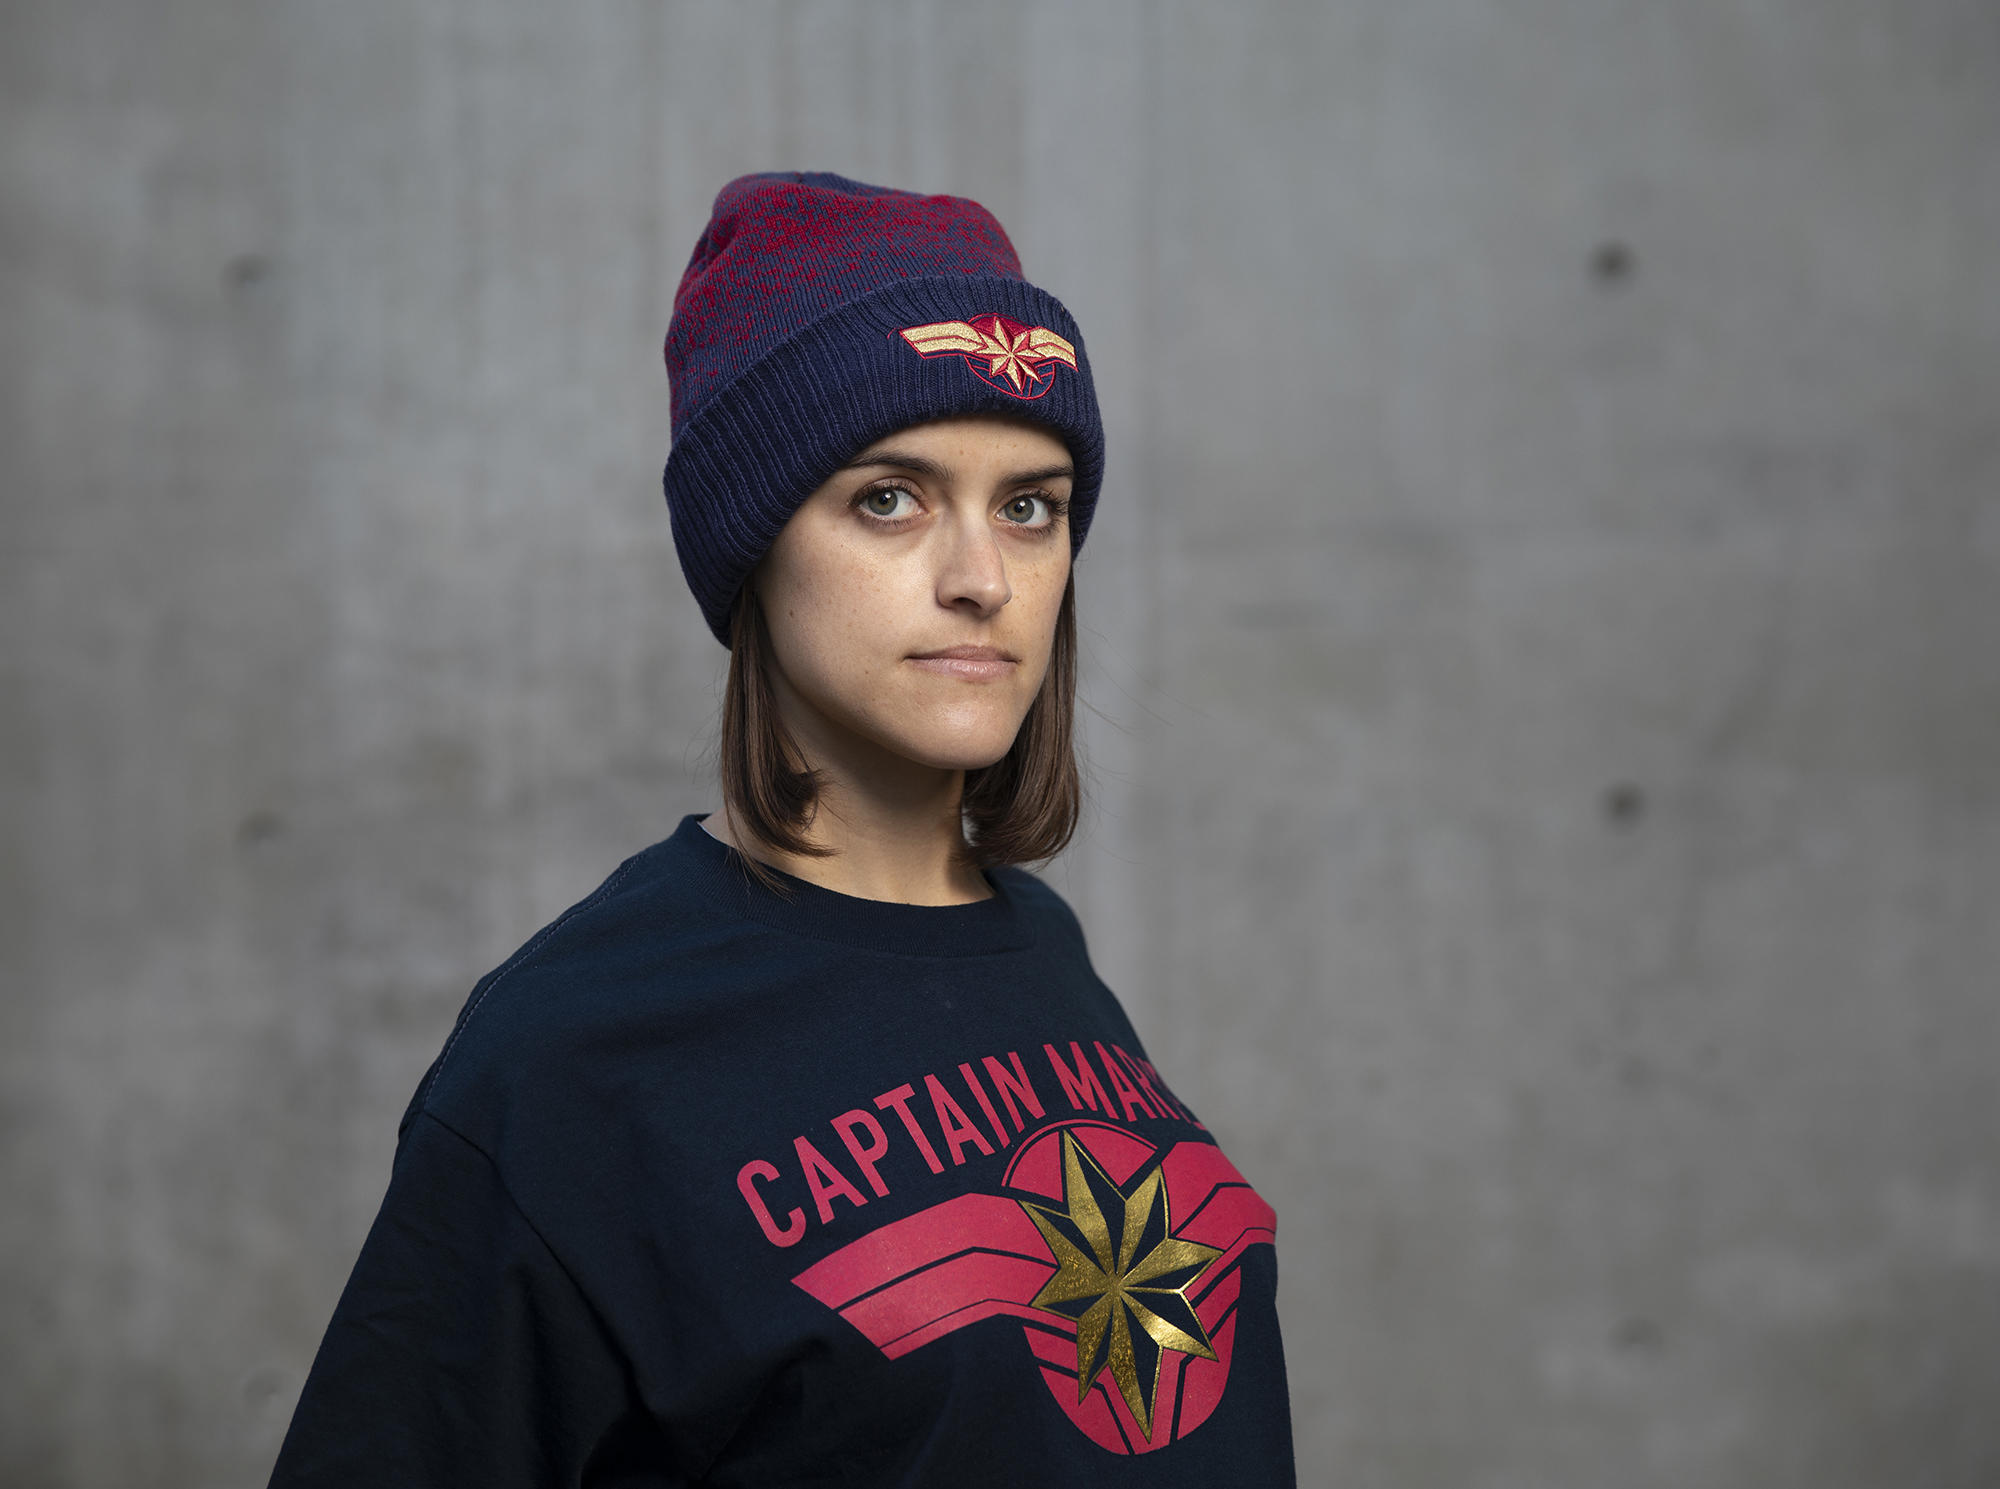 Captain Marvel shirt & hat